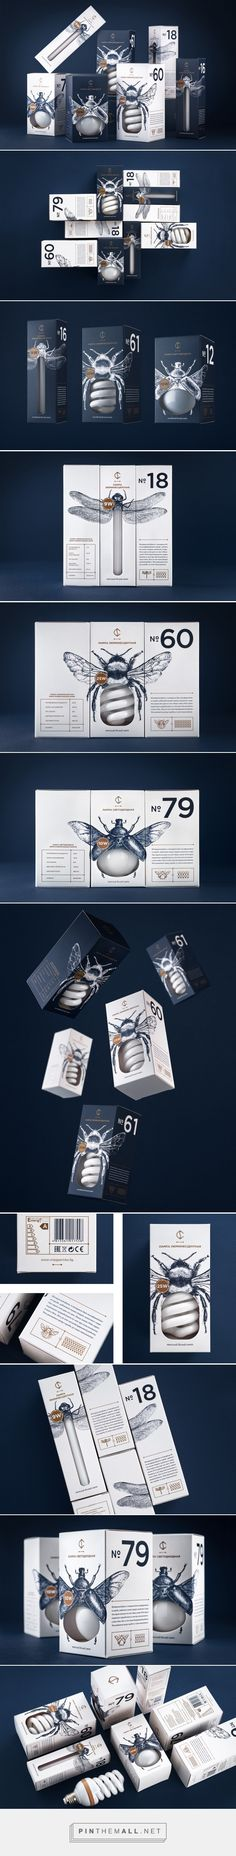 CS Light Bulbs packaging design by Angelina Pischikova Graphisches Design, Label Design, Print Design, Package Design, Cool Packaging, Print Packaging, Bread Packaging, Identity Design, Visual Identity